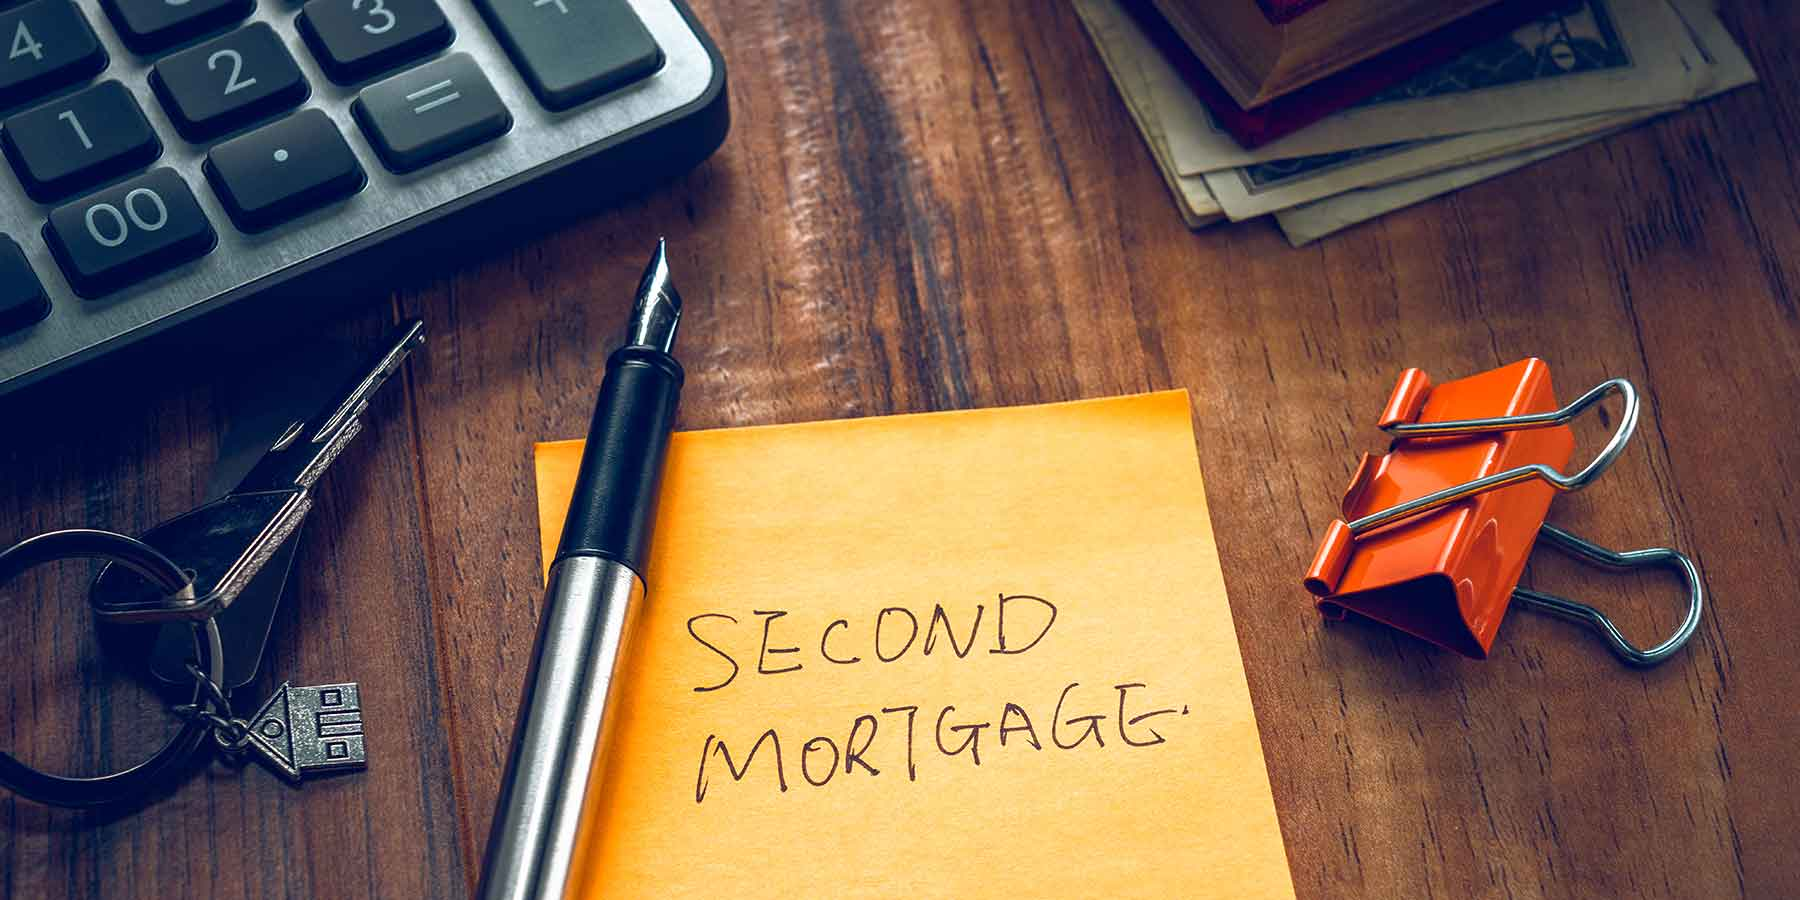 Second Mortgages Tips: How to Get Out Of the Credit Card Debt Rut